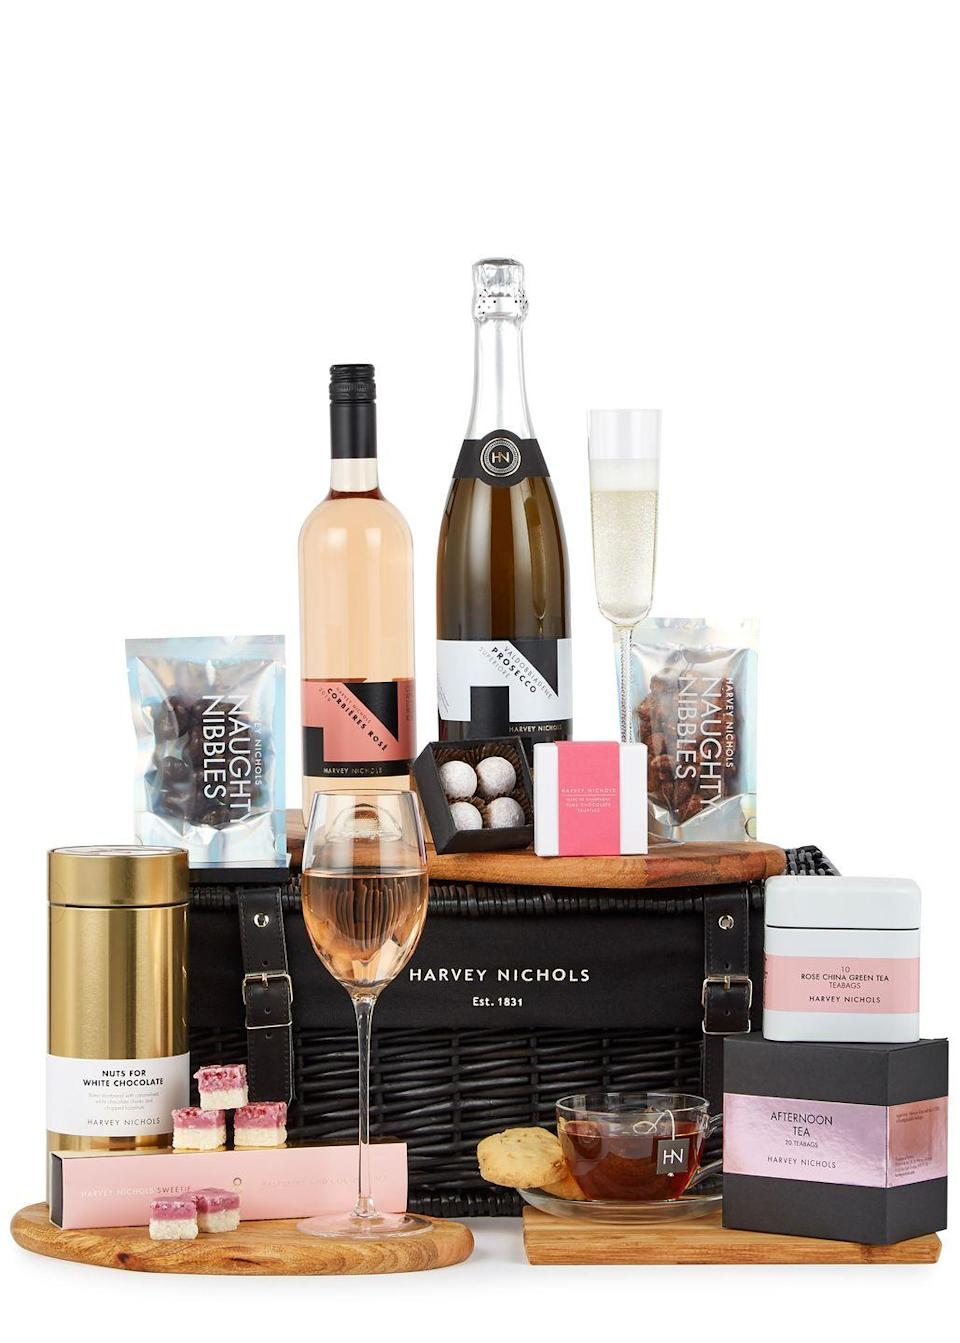 "<p>For a dreamy picnic à deux, look to Harvey Nichols' All Things Nice hamper. It contains a selection of luxury nibbles, a bottle of Prosecco and the store's bestselling rosé, as well as afternoon teas and Marc de Champagne pink chocolate truffles.</p><p>£85, Harvey Nichols</p><p><a class=""link rapid-noclick-resp"" href=""https://www.harveynichols.com/brand/harvey-nichols/3224867-all-things-nice-hamper/p3836354/"" rel=""nofollow noopener"" target=""_blank"" data-ylk=""slk:SHOP NOW"">SHOP NOW</a></p>"